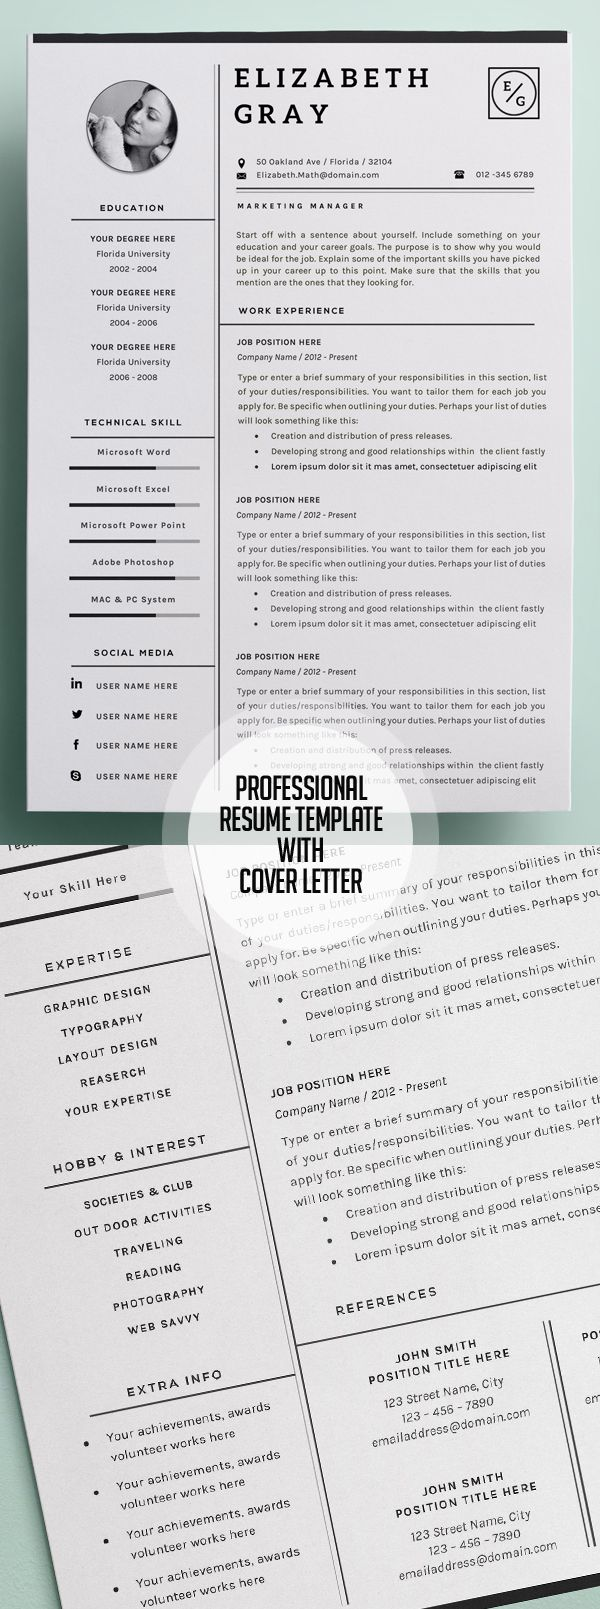 Picnictoimpeachus  Pretty  Resume Ideas On Pinterest  Resume Resume Templates And  With Fetching Professional And Modern Resume Template With Page Cover Cvtemplate With Appealing Job Objectives For Resumes Also What Is A Resume Supposed To Look Like In Addition User Experience Resume And Examples Of Resume Profiles As Well As Office Assistant Resume Objective Additionally Resume Executive Summary Examples From Pinterestcom With Picnictoimpeachus  Fetching  Resume Ideas On Pinterest  Resume Resume Templates And  With Appealing Professional And Modern Resume Template With Page Cover Cvtemplate And Pretty Job Objectives For Resumes Also What Is A Resume Supposed To Look Like In Addition User Experience Resume From Pinterestcom